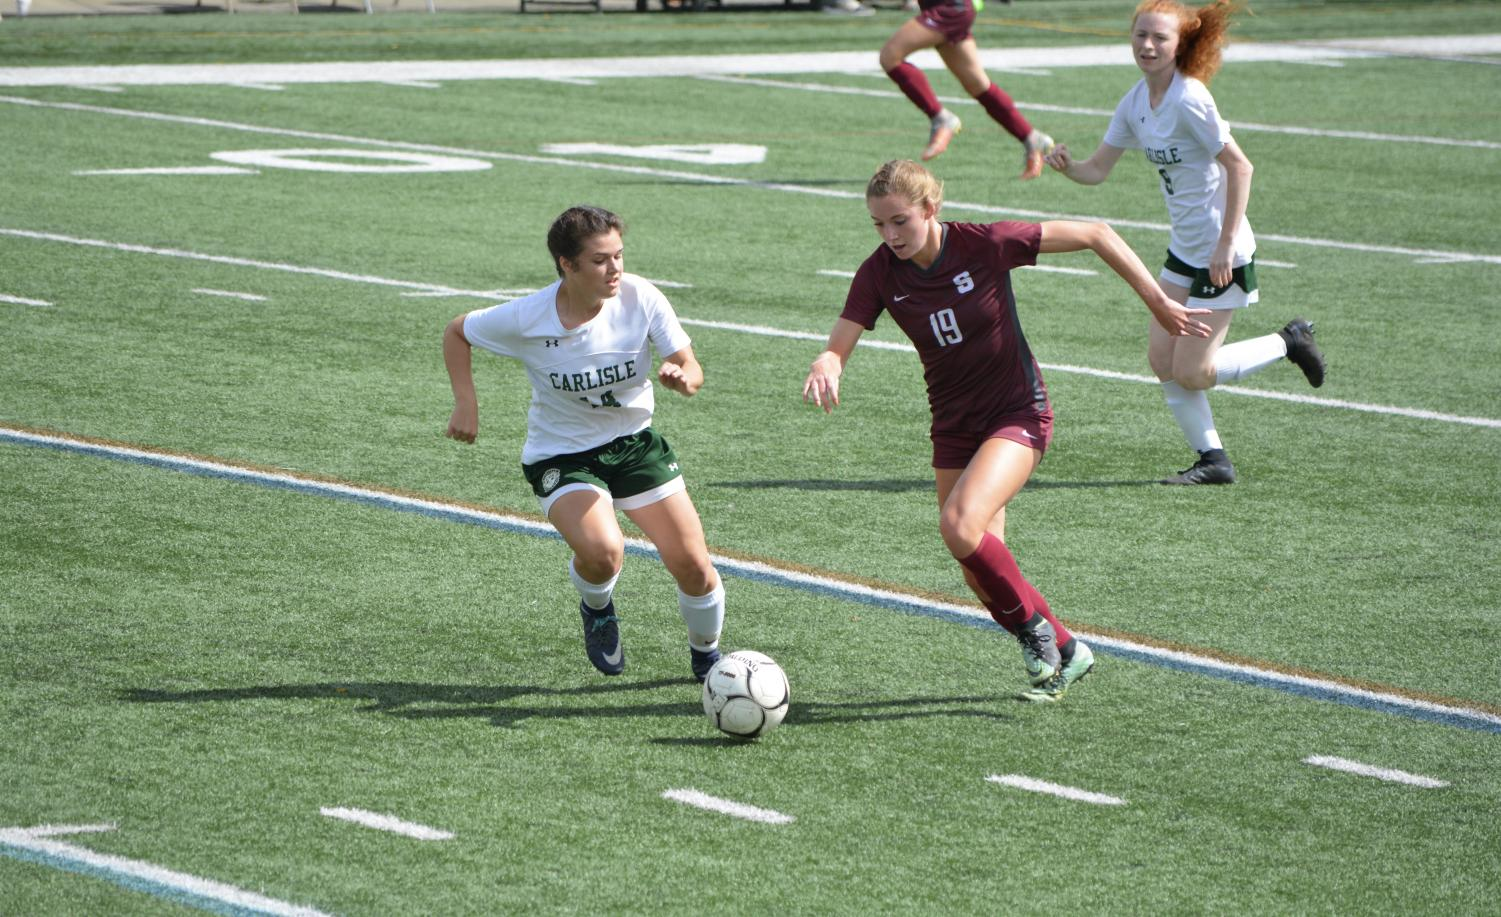 """Erica Feese(right),senior, #19, breaks away to score her second of four goals in the game. """"Even though we let two goals in early, we didn't give up and rallied for the 6-4 win,"""" Feese said."""